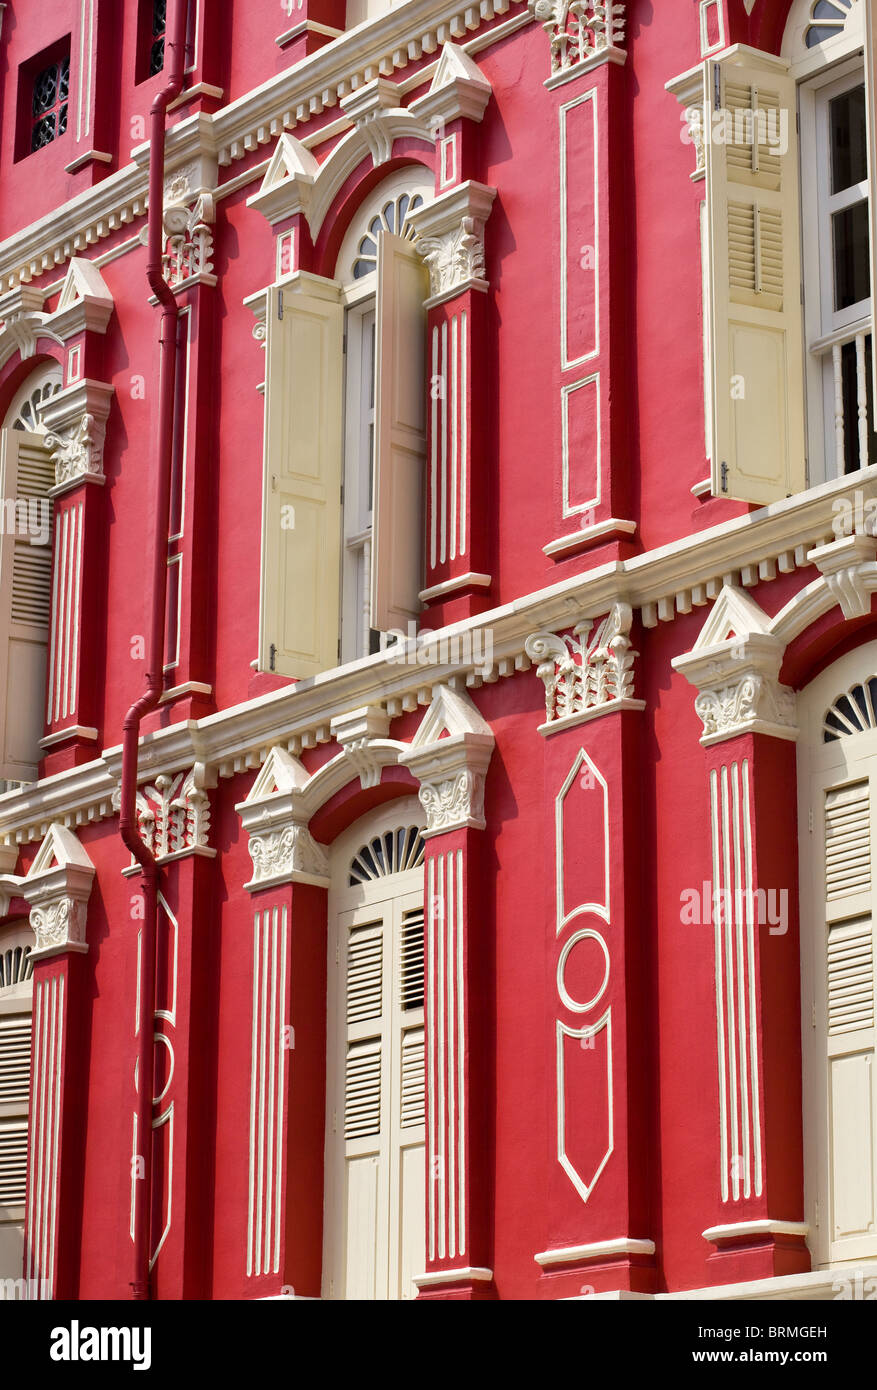 Chinatown Shophouse Facade Singapore Stock Photo